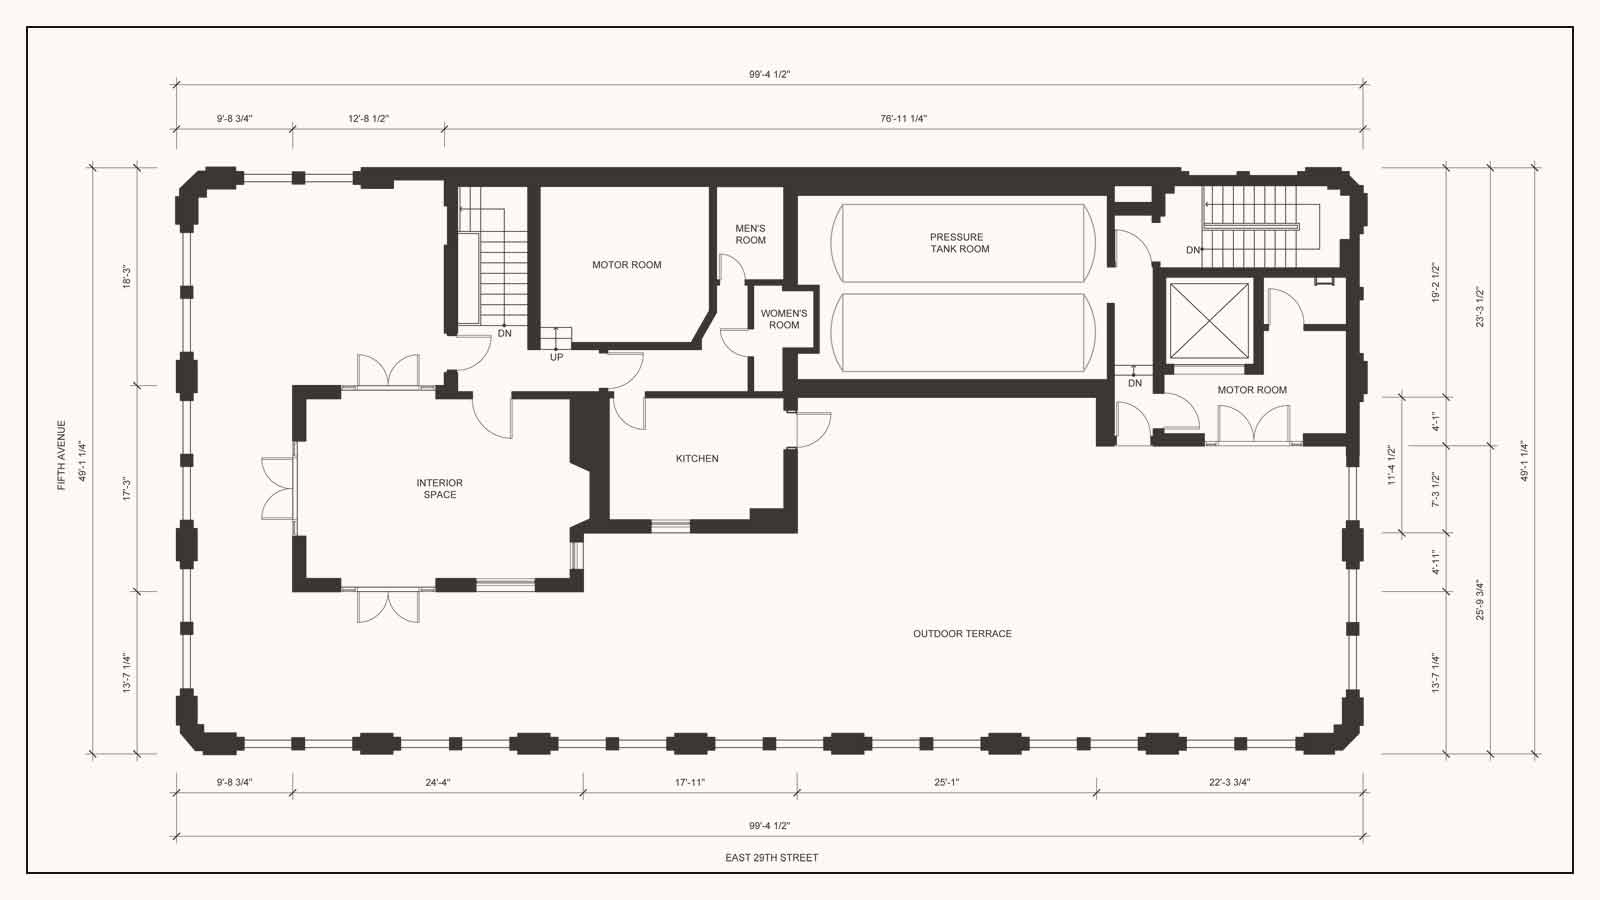 The Terrace plan